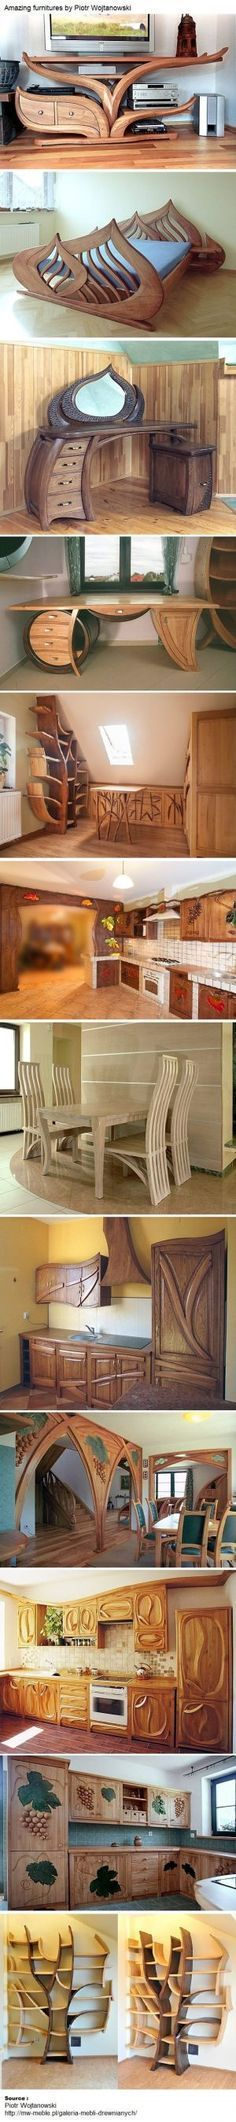 Wood Profits - This might be the Hobbits furniture collection. Amazing furnitures by Piotr Wojtanowski - Discover How You Can Start A Woodworking Business From Home Easily in 7 Days With NO Capital Needed! Funky Furniture, Unique Furniture, Wooden Furniture, Furniture Design, Recycled Furniture, Repainting Furniture, Homemade Furniture, Luxury Furniture, Outdoor Furniture